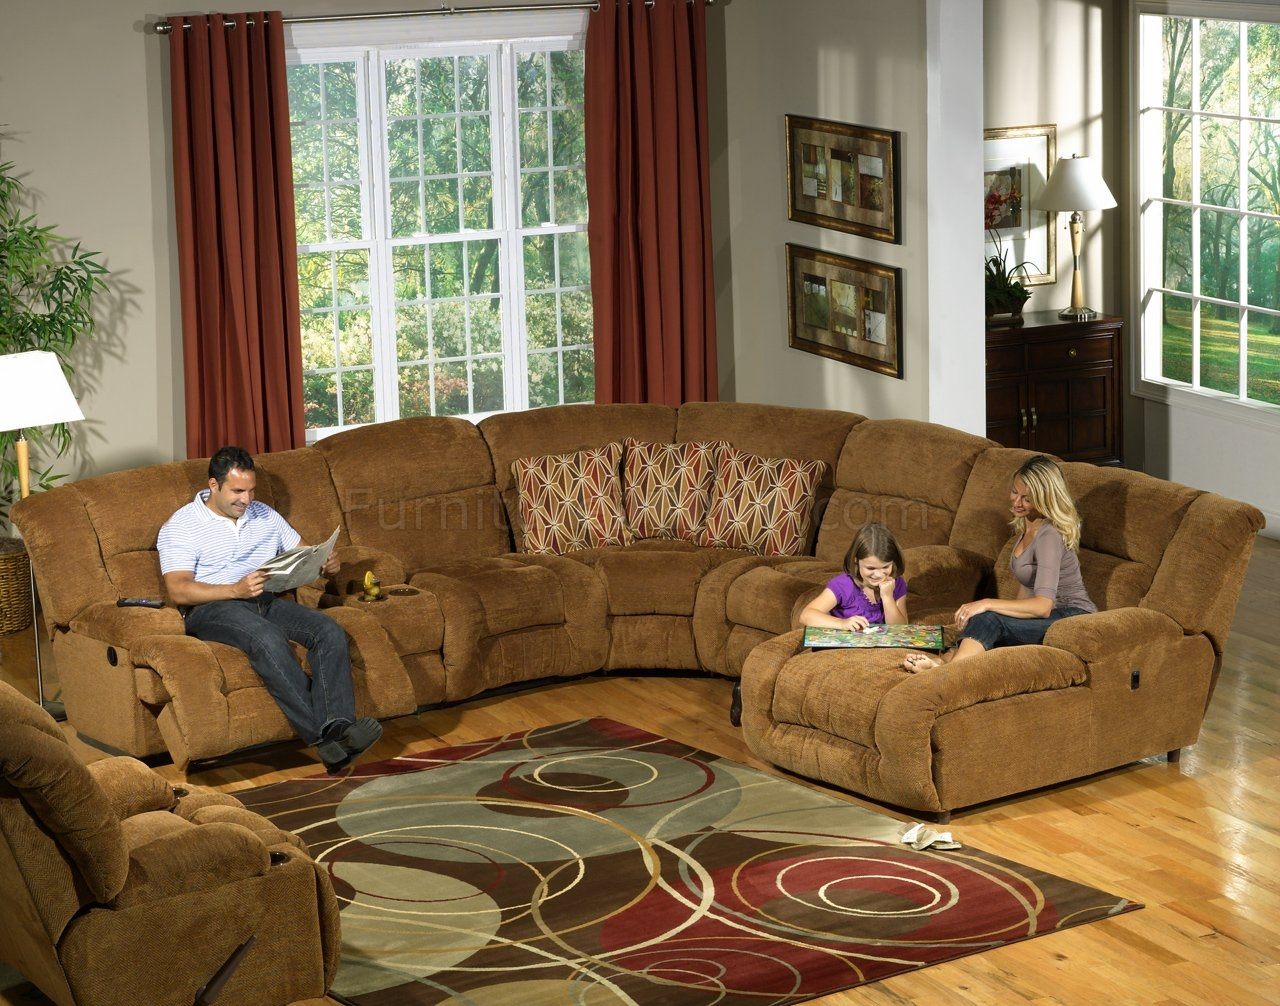 Camel Fabric Enterprise 4pc Reclining Sectional Sofa Woptions Throughout Camel Colored Sectional Sofa (Image 8 of 15)